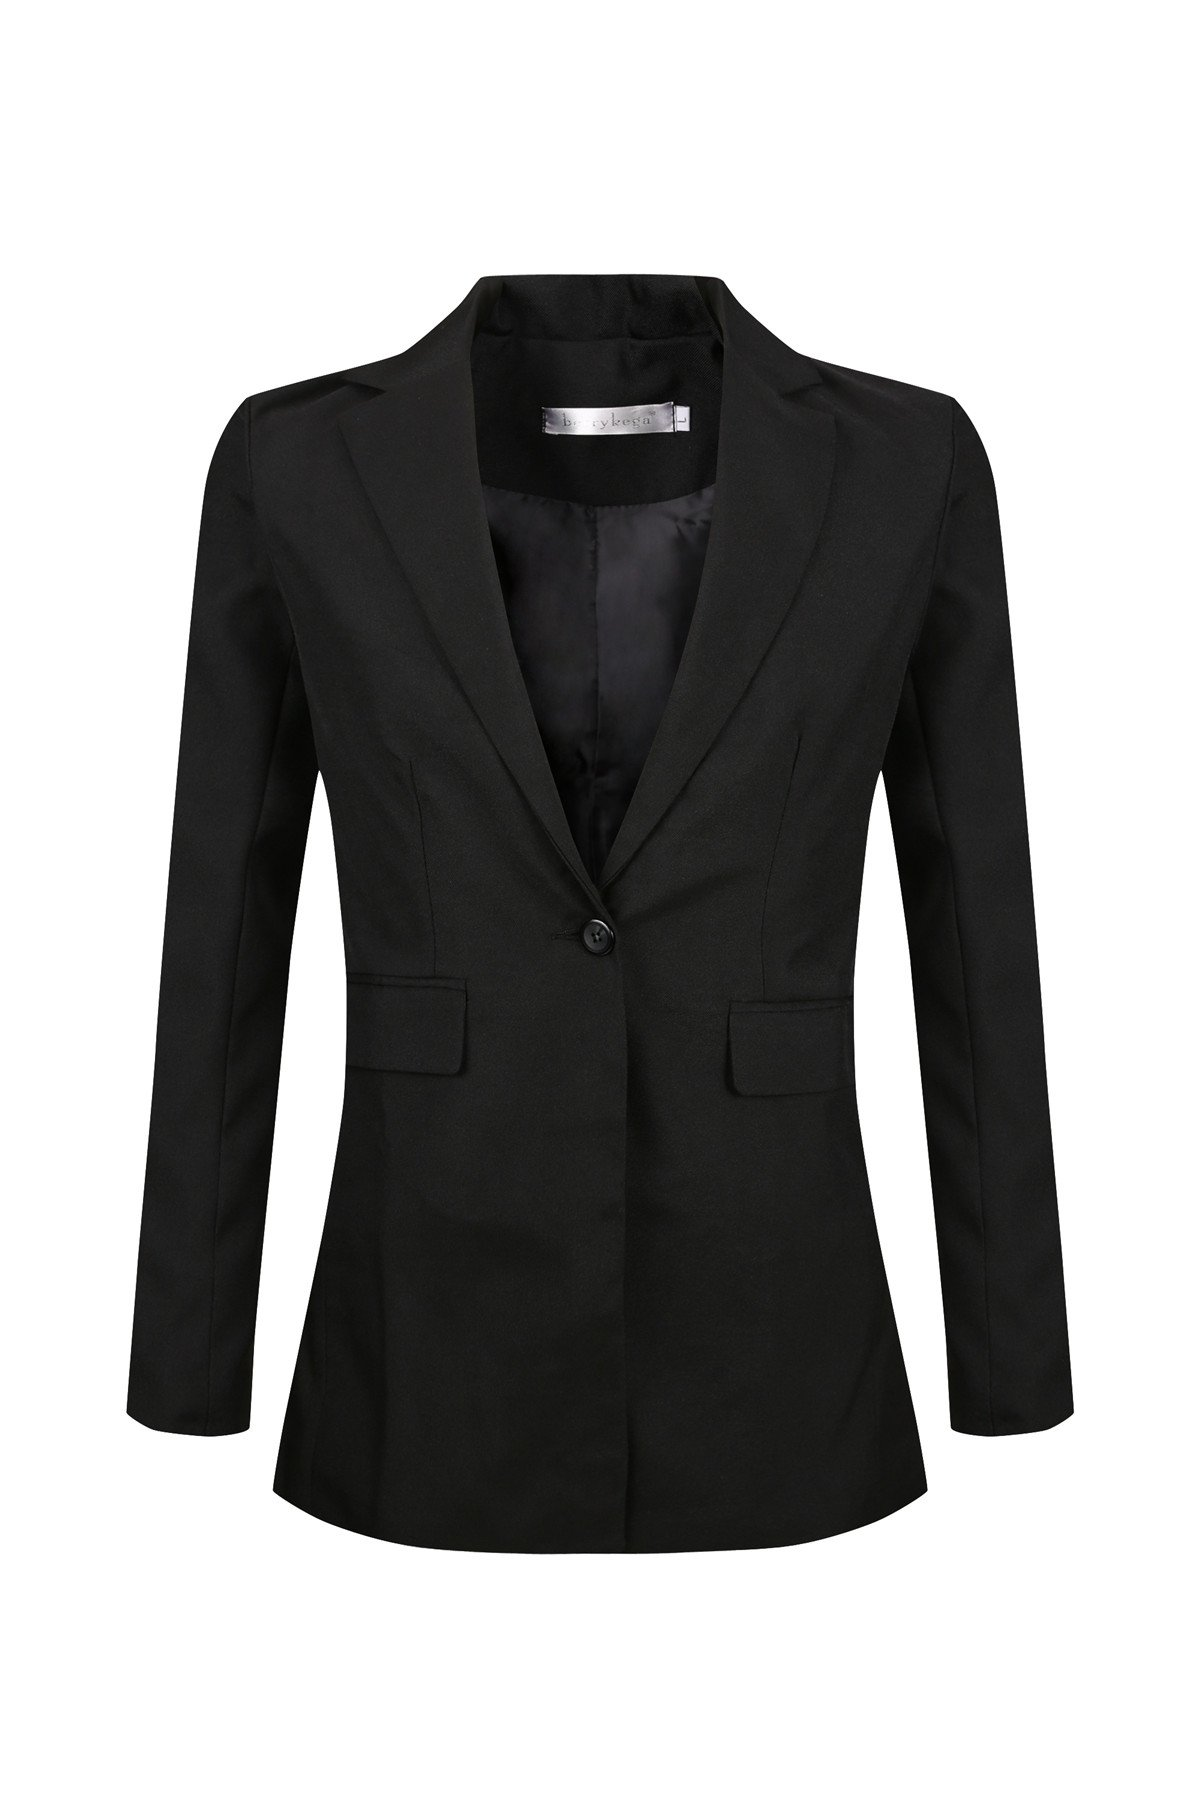 SHUIANGRAN Women's Slim Fit Notch Collar One Button Jacket Office Blazers Black US 10 (tag Asian 3XL)